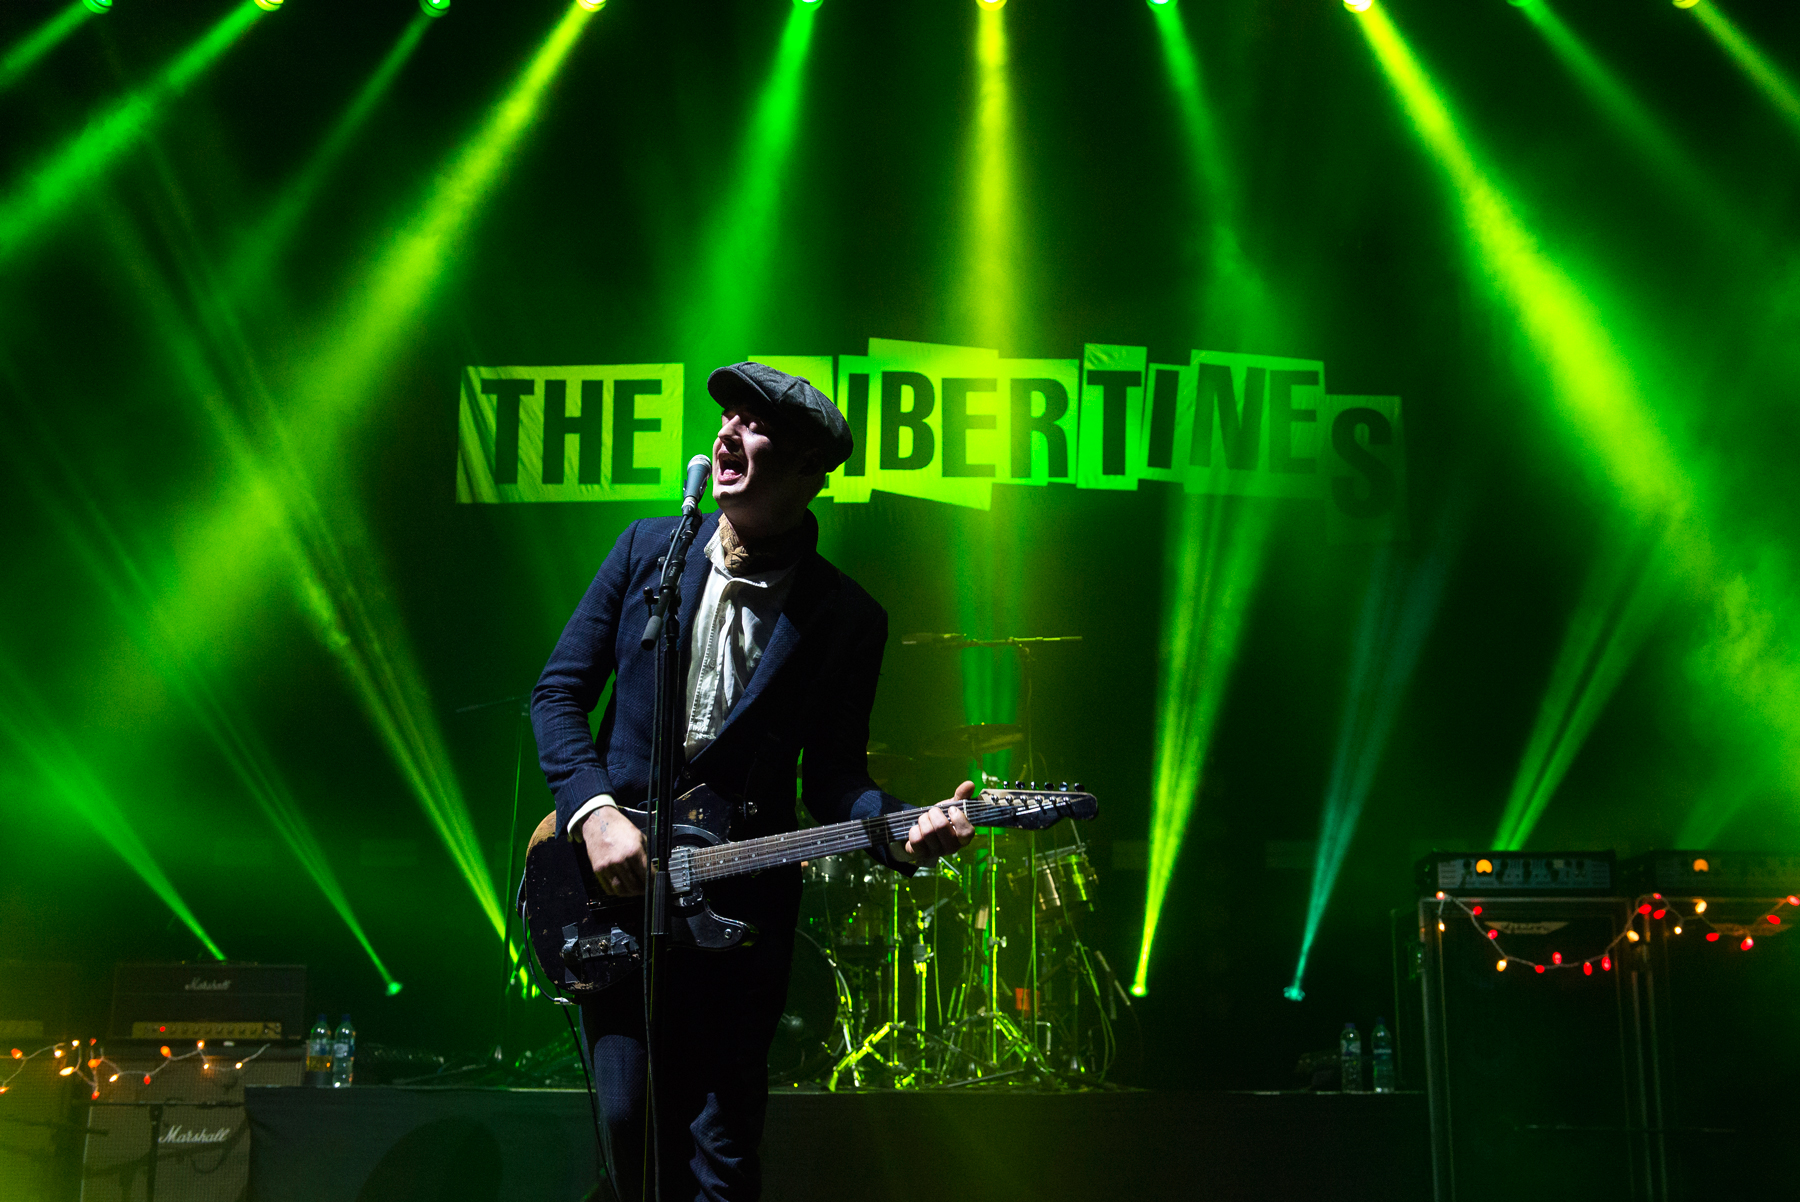 LONDON, ENGLAND - DECEMBER 19: Pete Doherty of The Libertines performs at O2 Academy Brixton on December 19, 2019 in London, United Kingdom. (Photo by Matthew Baker/Getty Images)